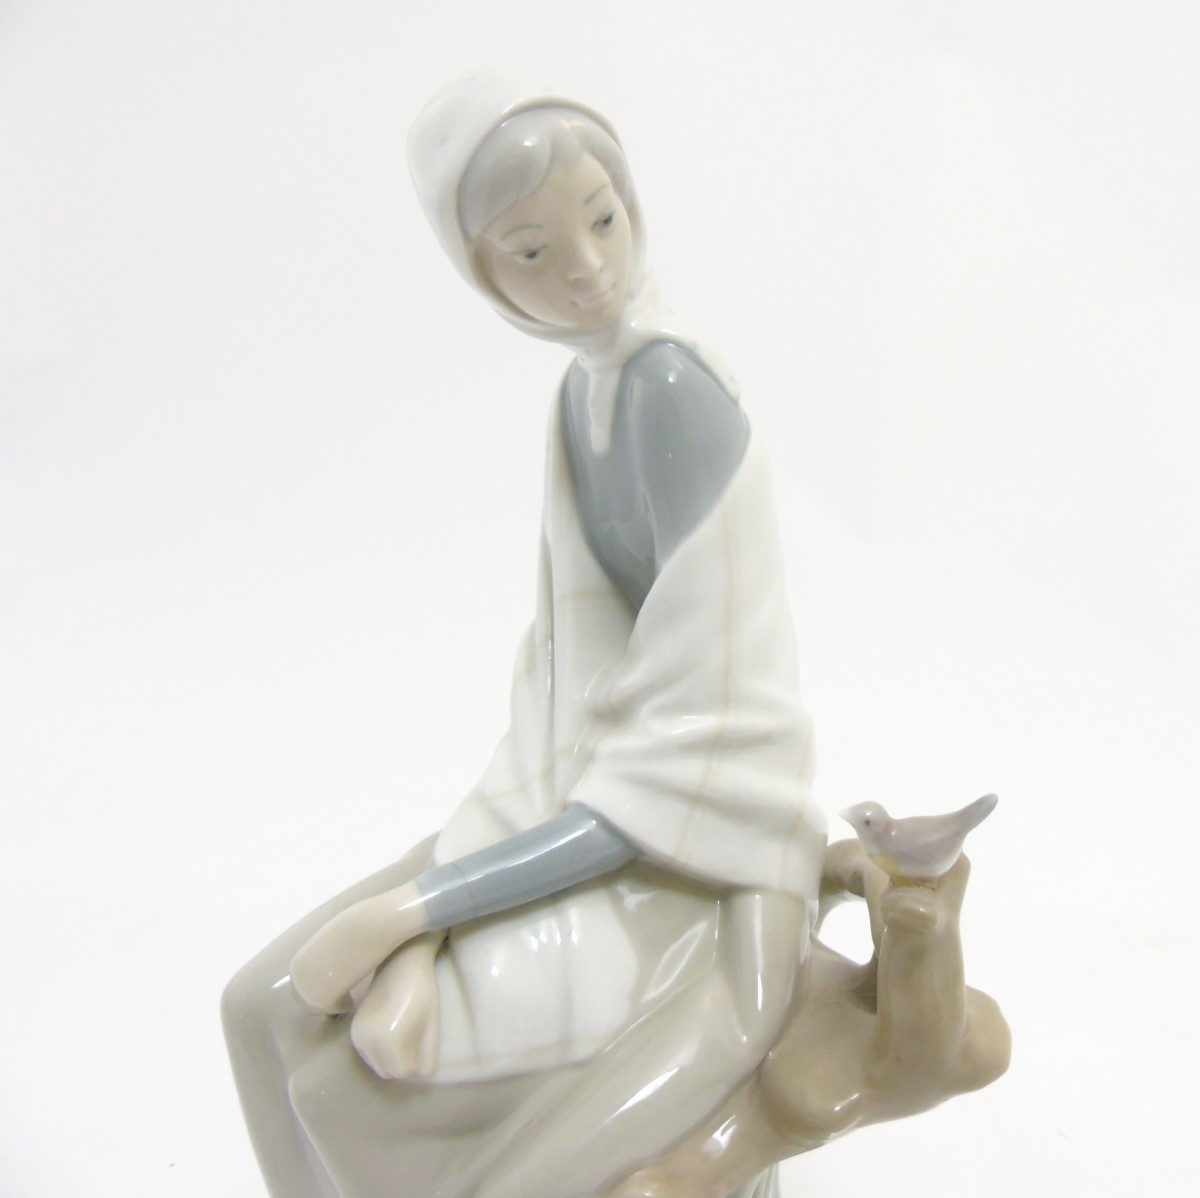 Lot 47 - A Lladro 'New Shepherdess' figurine of a girl sat watching a bird, makers mark to base,